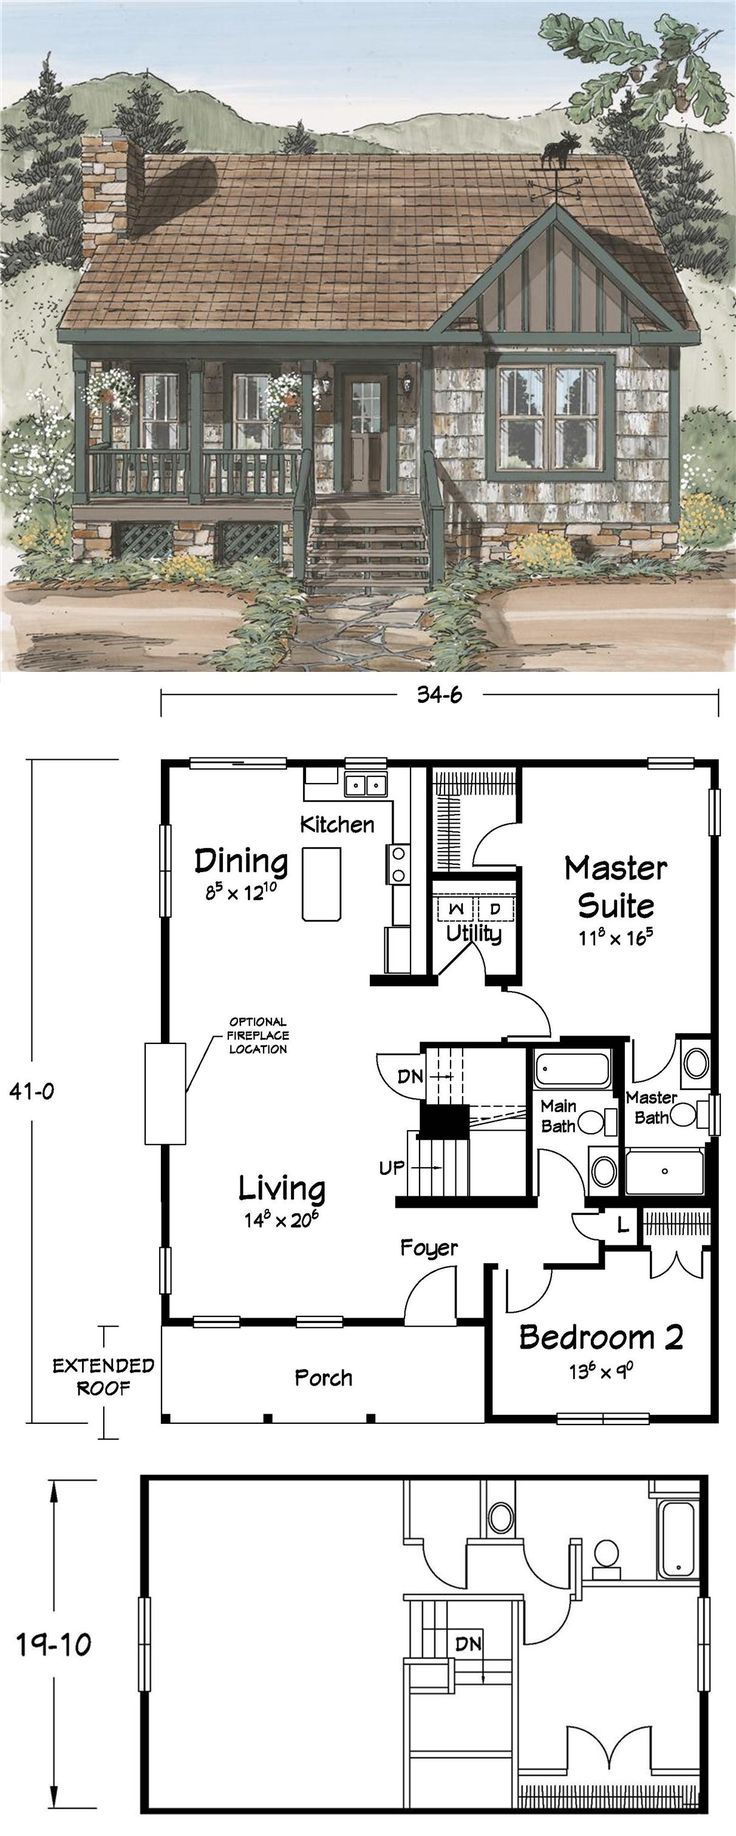 Cute floor plans tiny homes pinterest cabin small Small cabin plans with basement